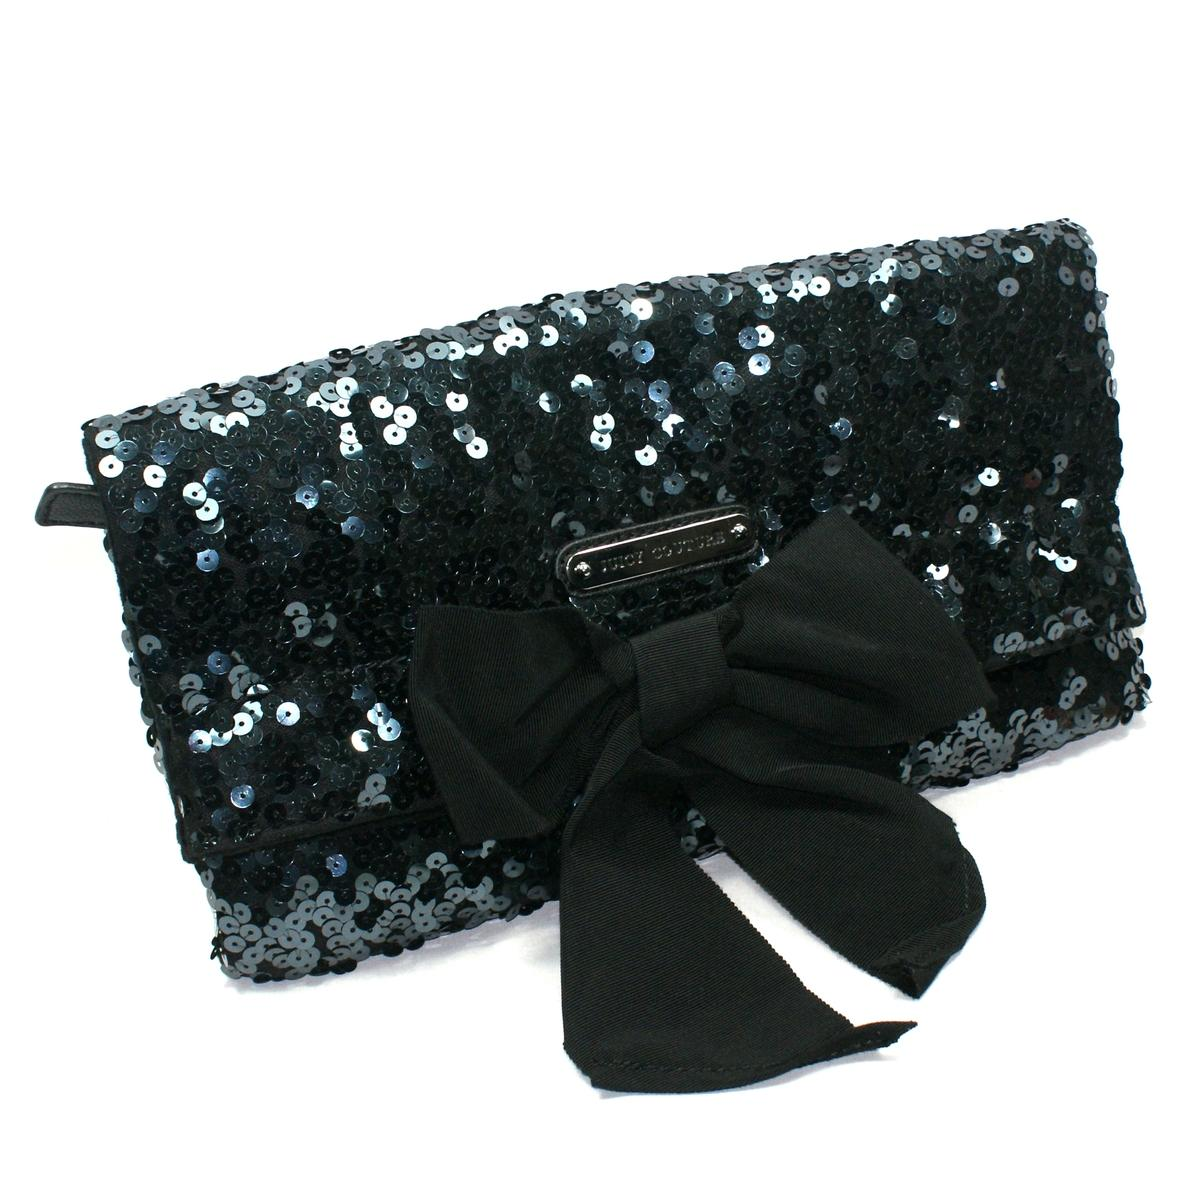 Juicy Couture Black Sequin Large Clutch Bag Yhruo011